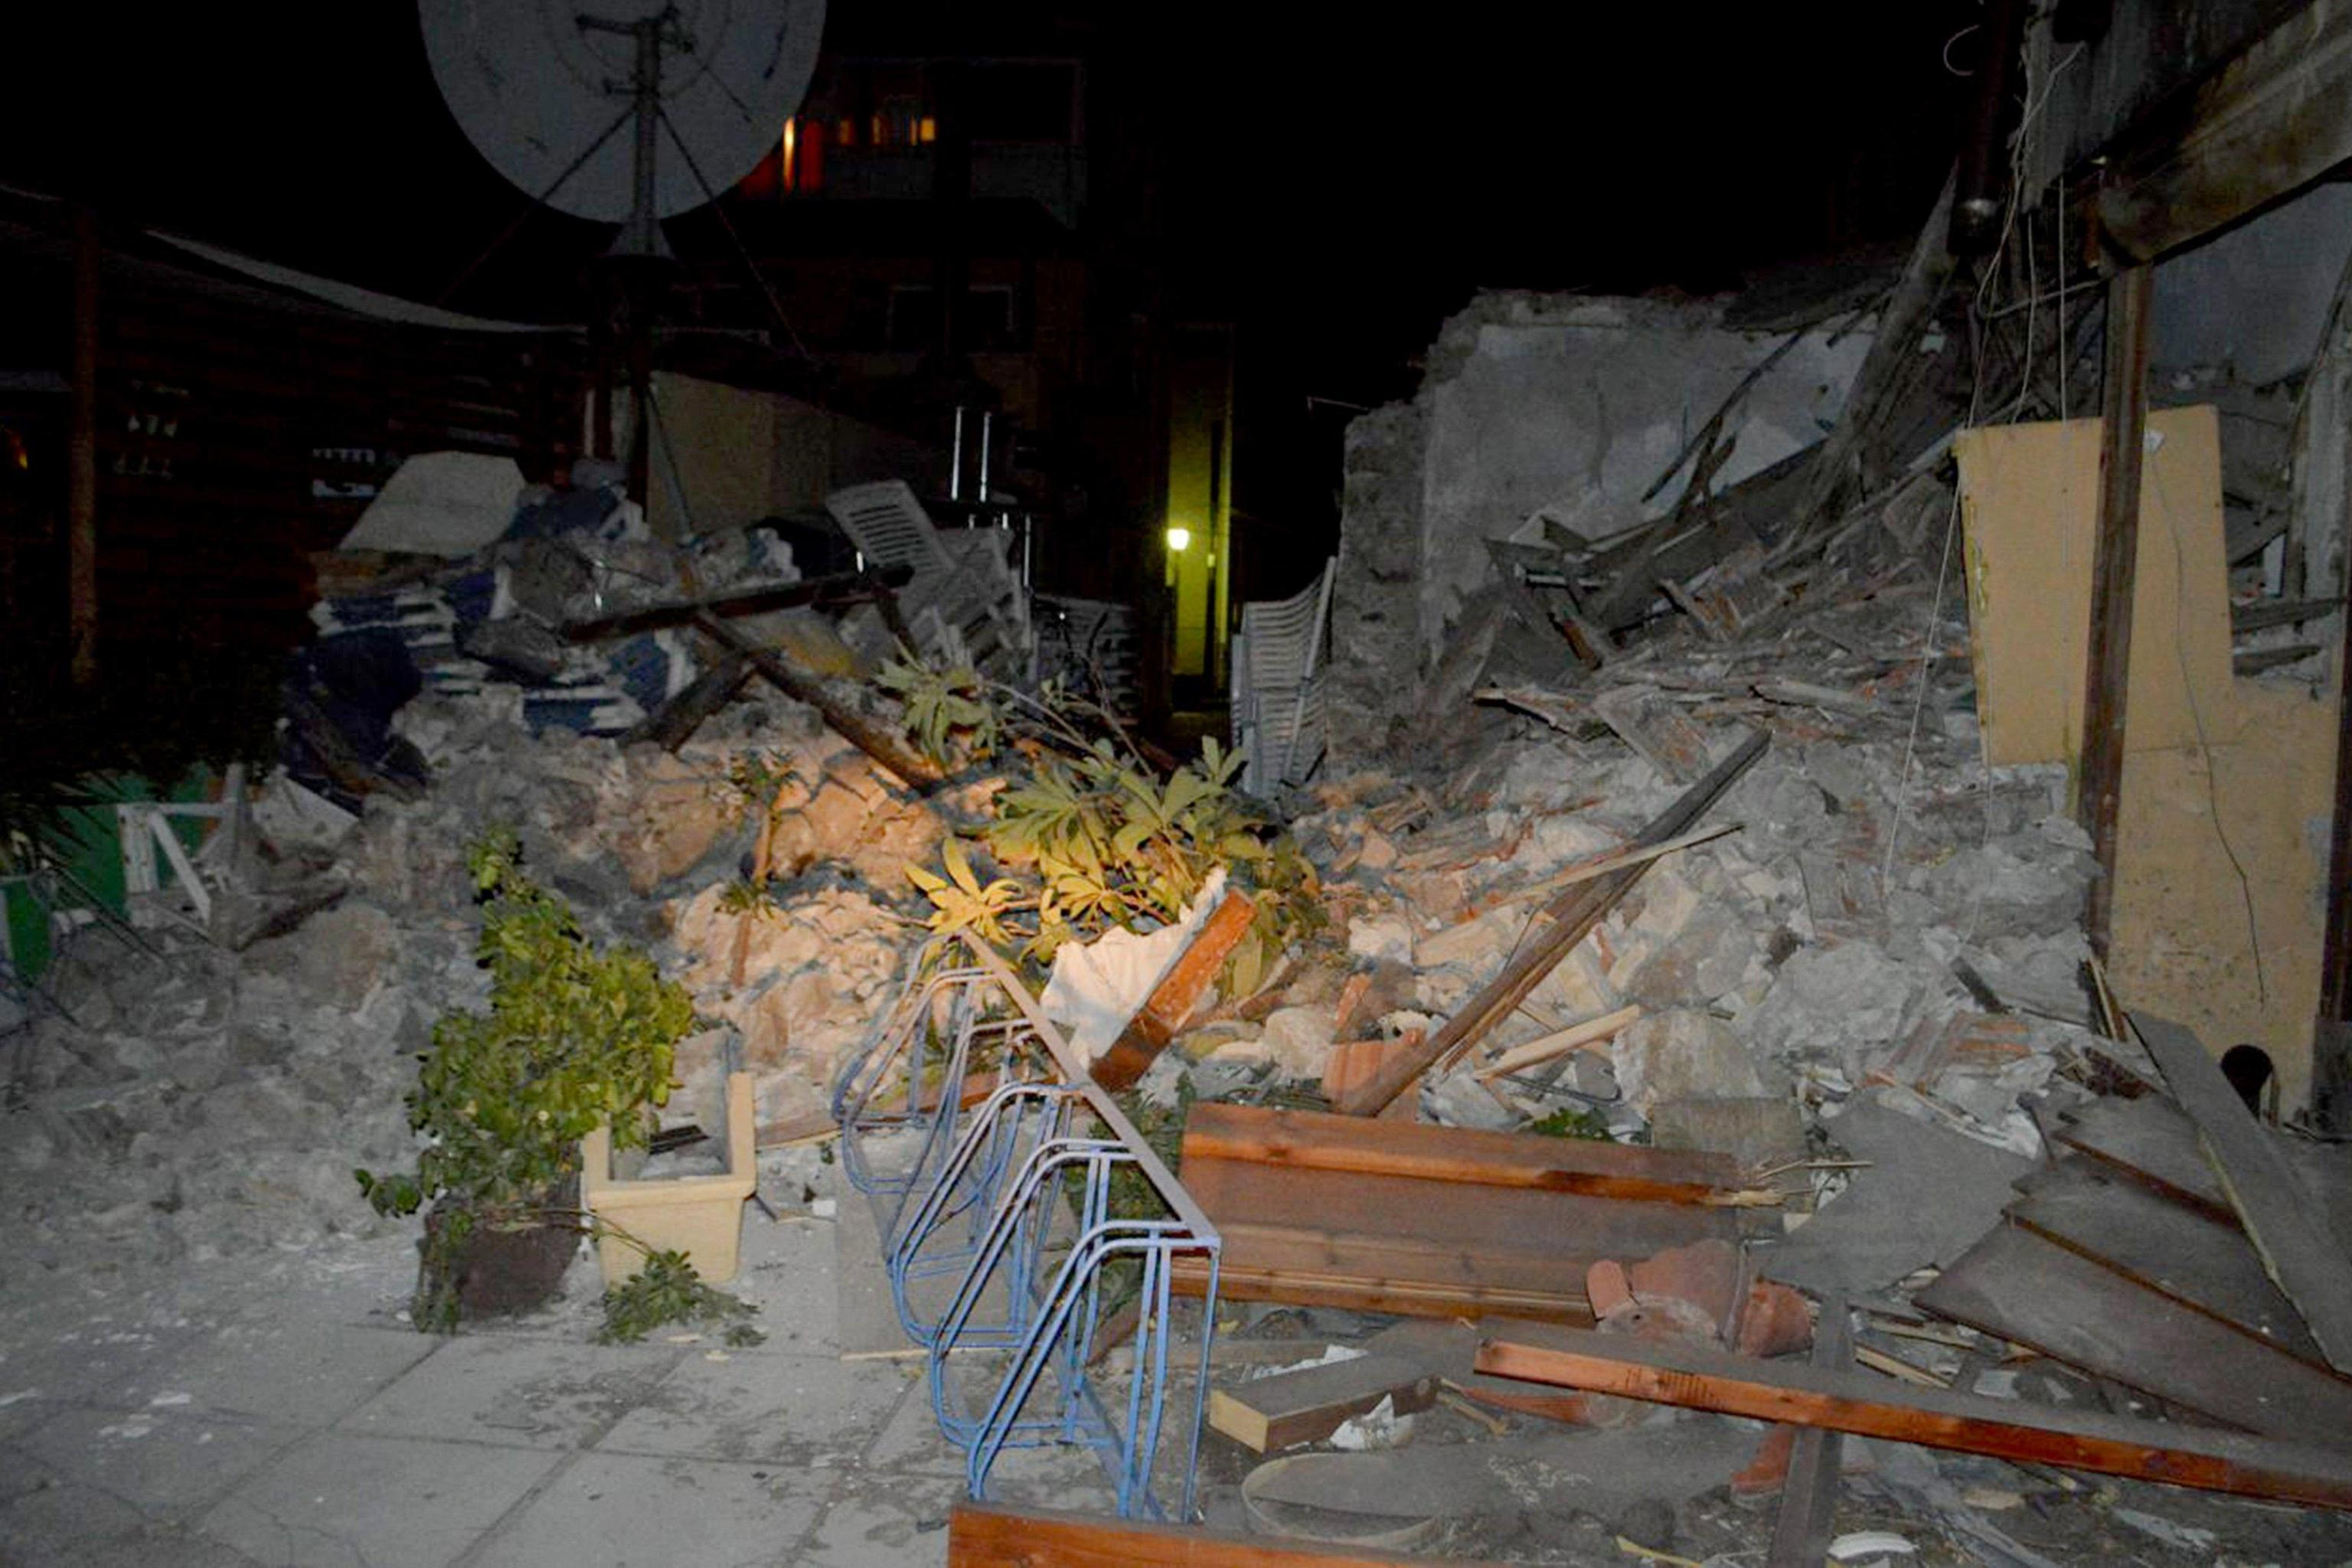 Two deaths from earthquake related damage on island of Kos